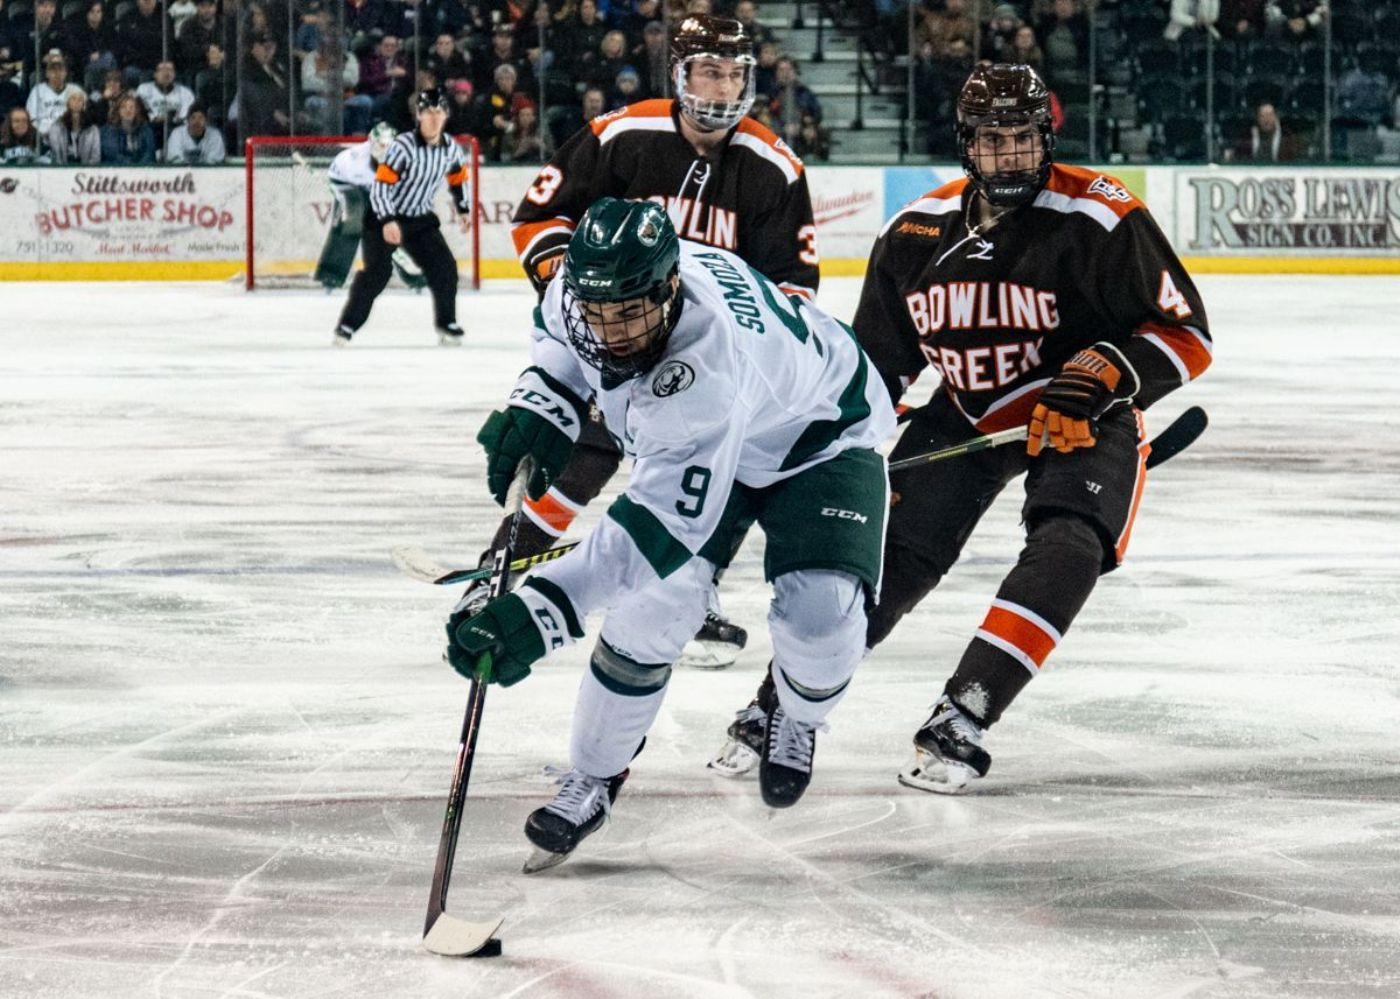 Beavers defeat No. 6 Bowling Green in overtime